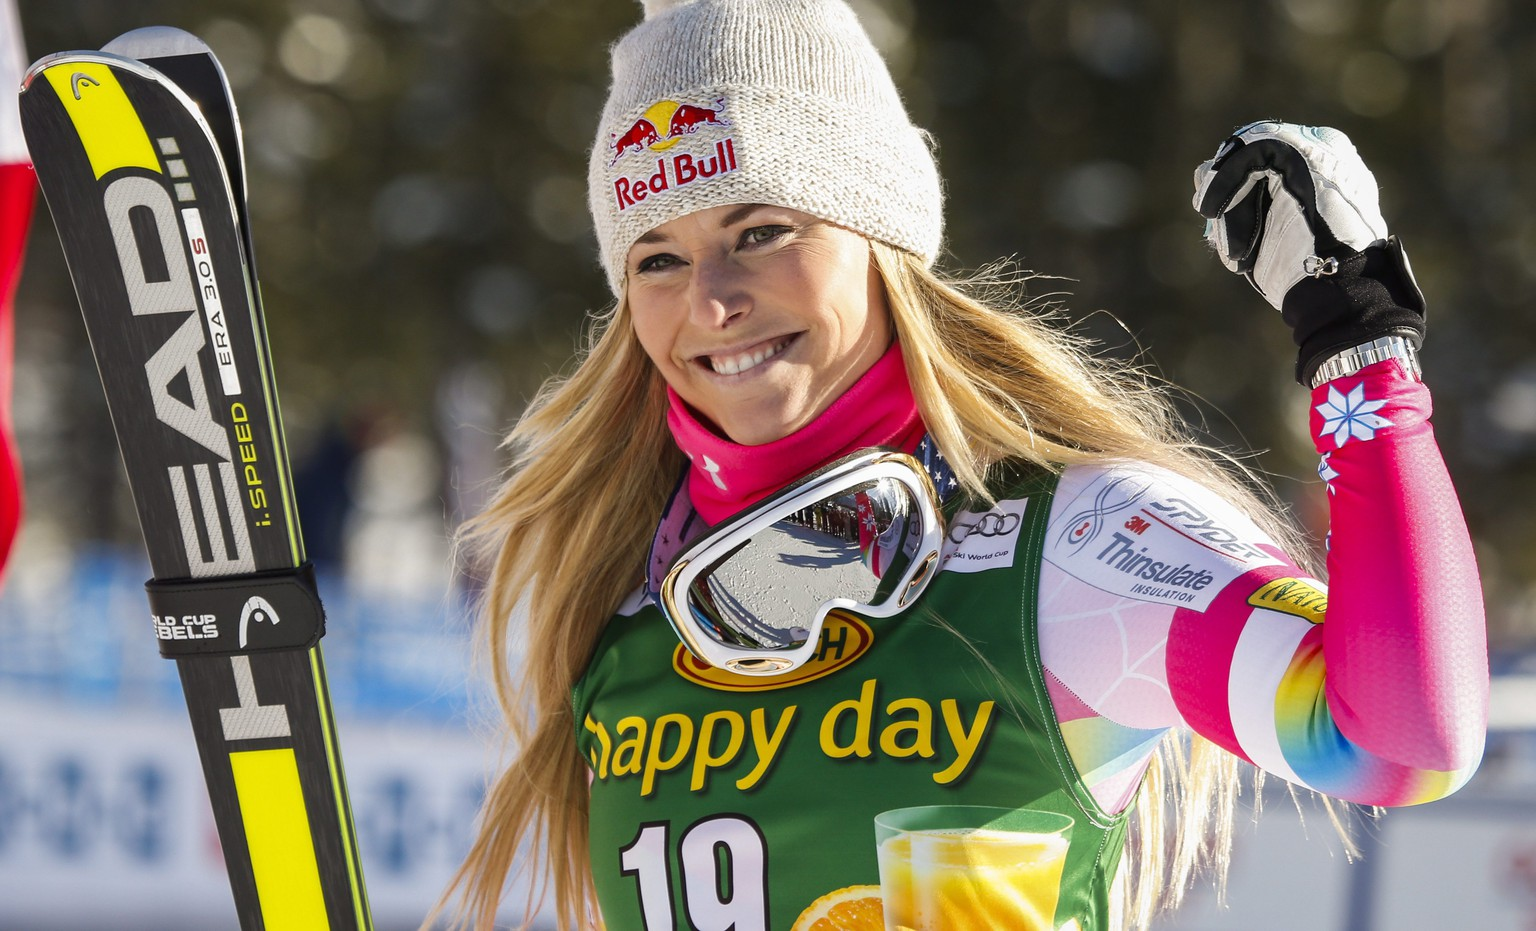 FILE - In this Dec. 7, 2014, file photo, Lindsey Vonn, of the United States, celebrates her second place finish in the women's World Cup Super-G ski race in Lake Louise, Alberta. Vonn's comeback from two knee surgeries will be the subject of an upcoming documentary featuring footage from the operating room along with rehab sessions in her hometown of Vail, Colorado. The one-hour film is called